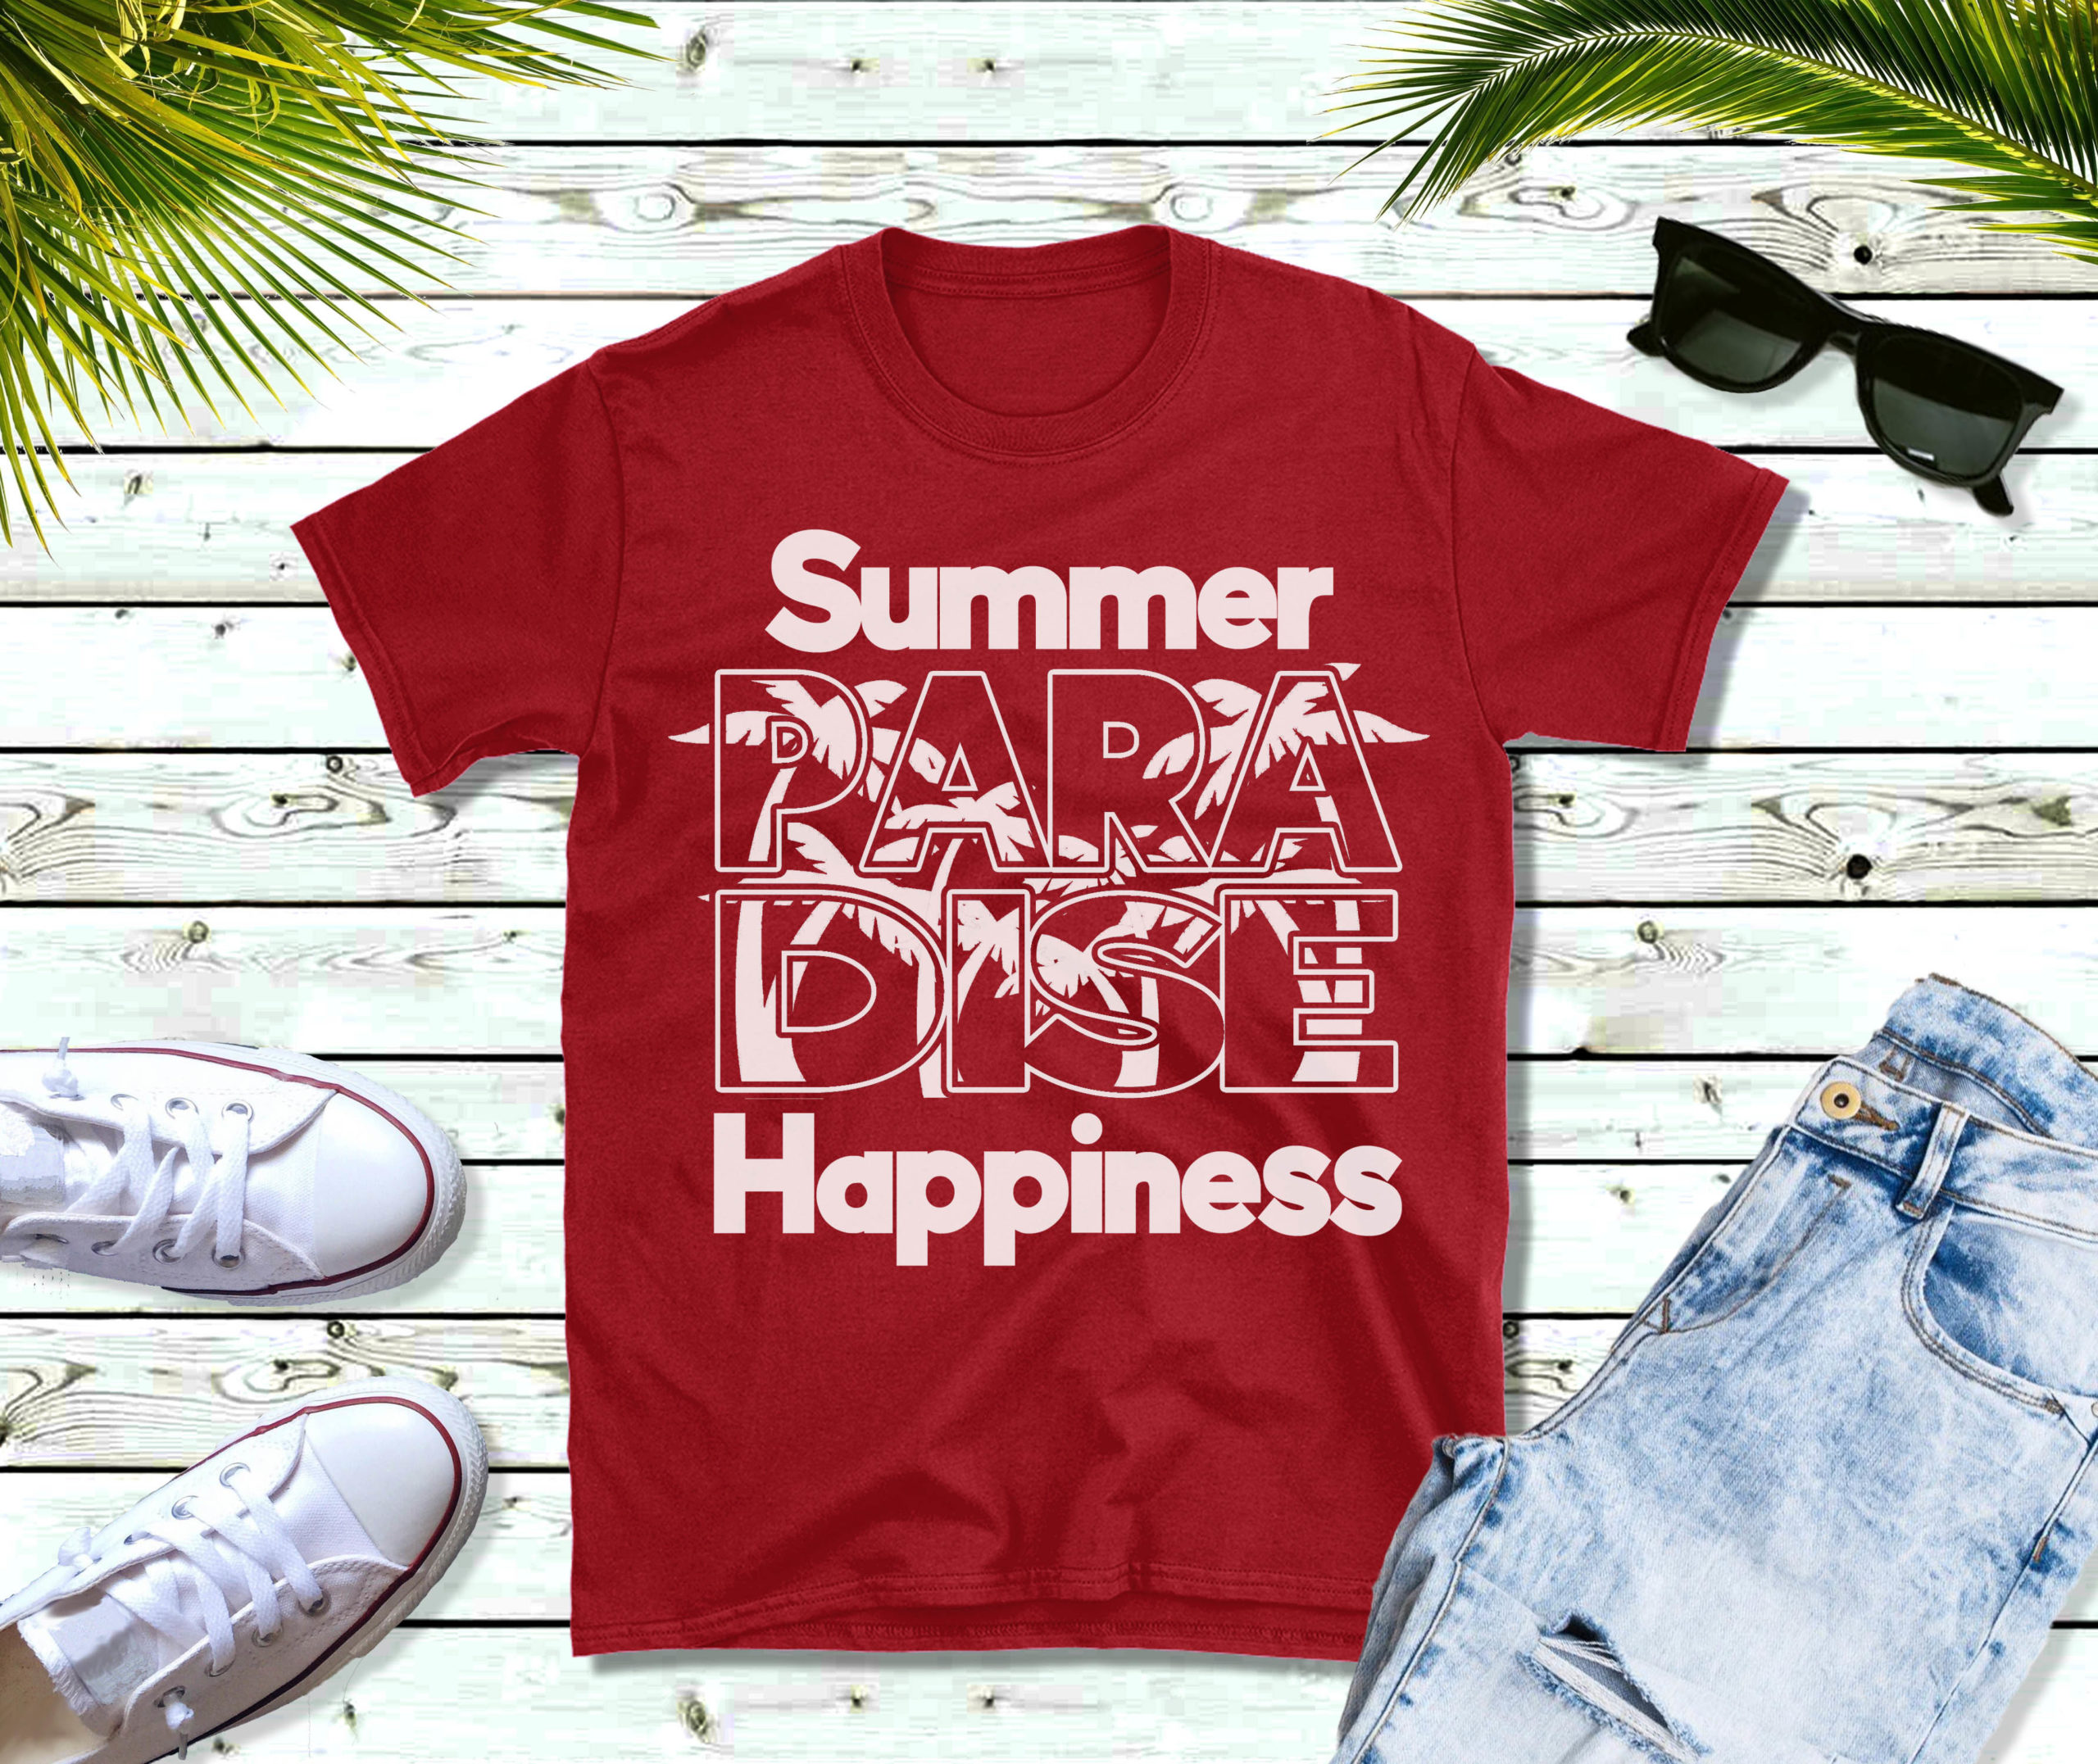 Free Summer Paradise Happiness SVG File